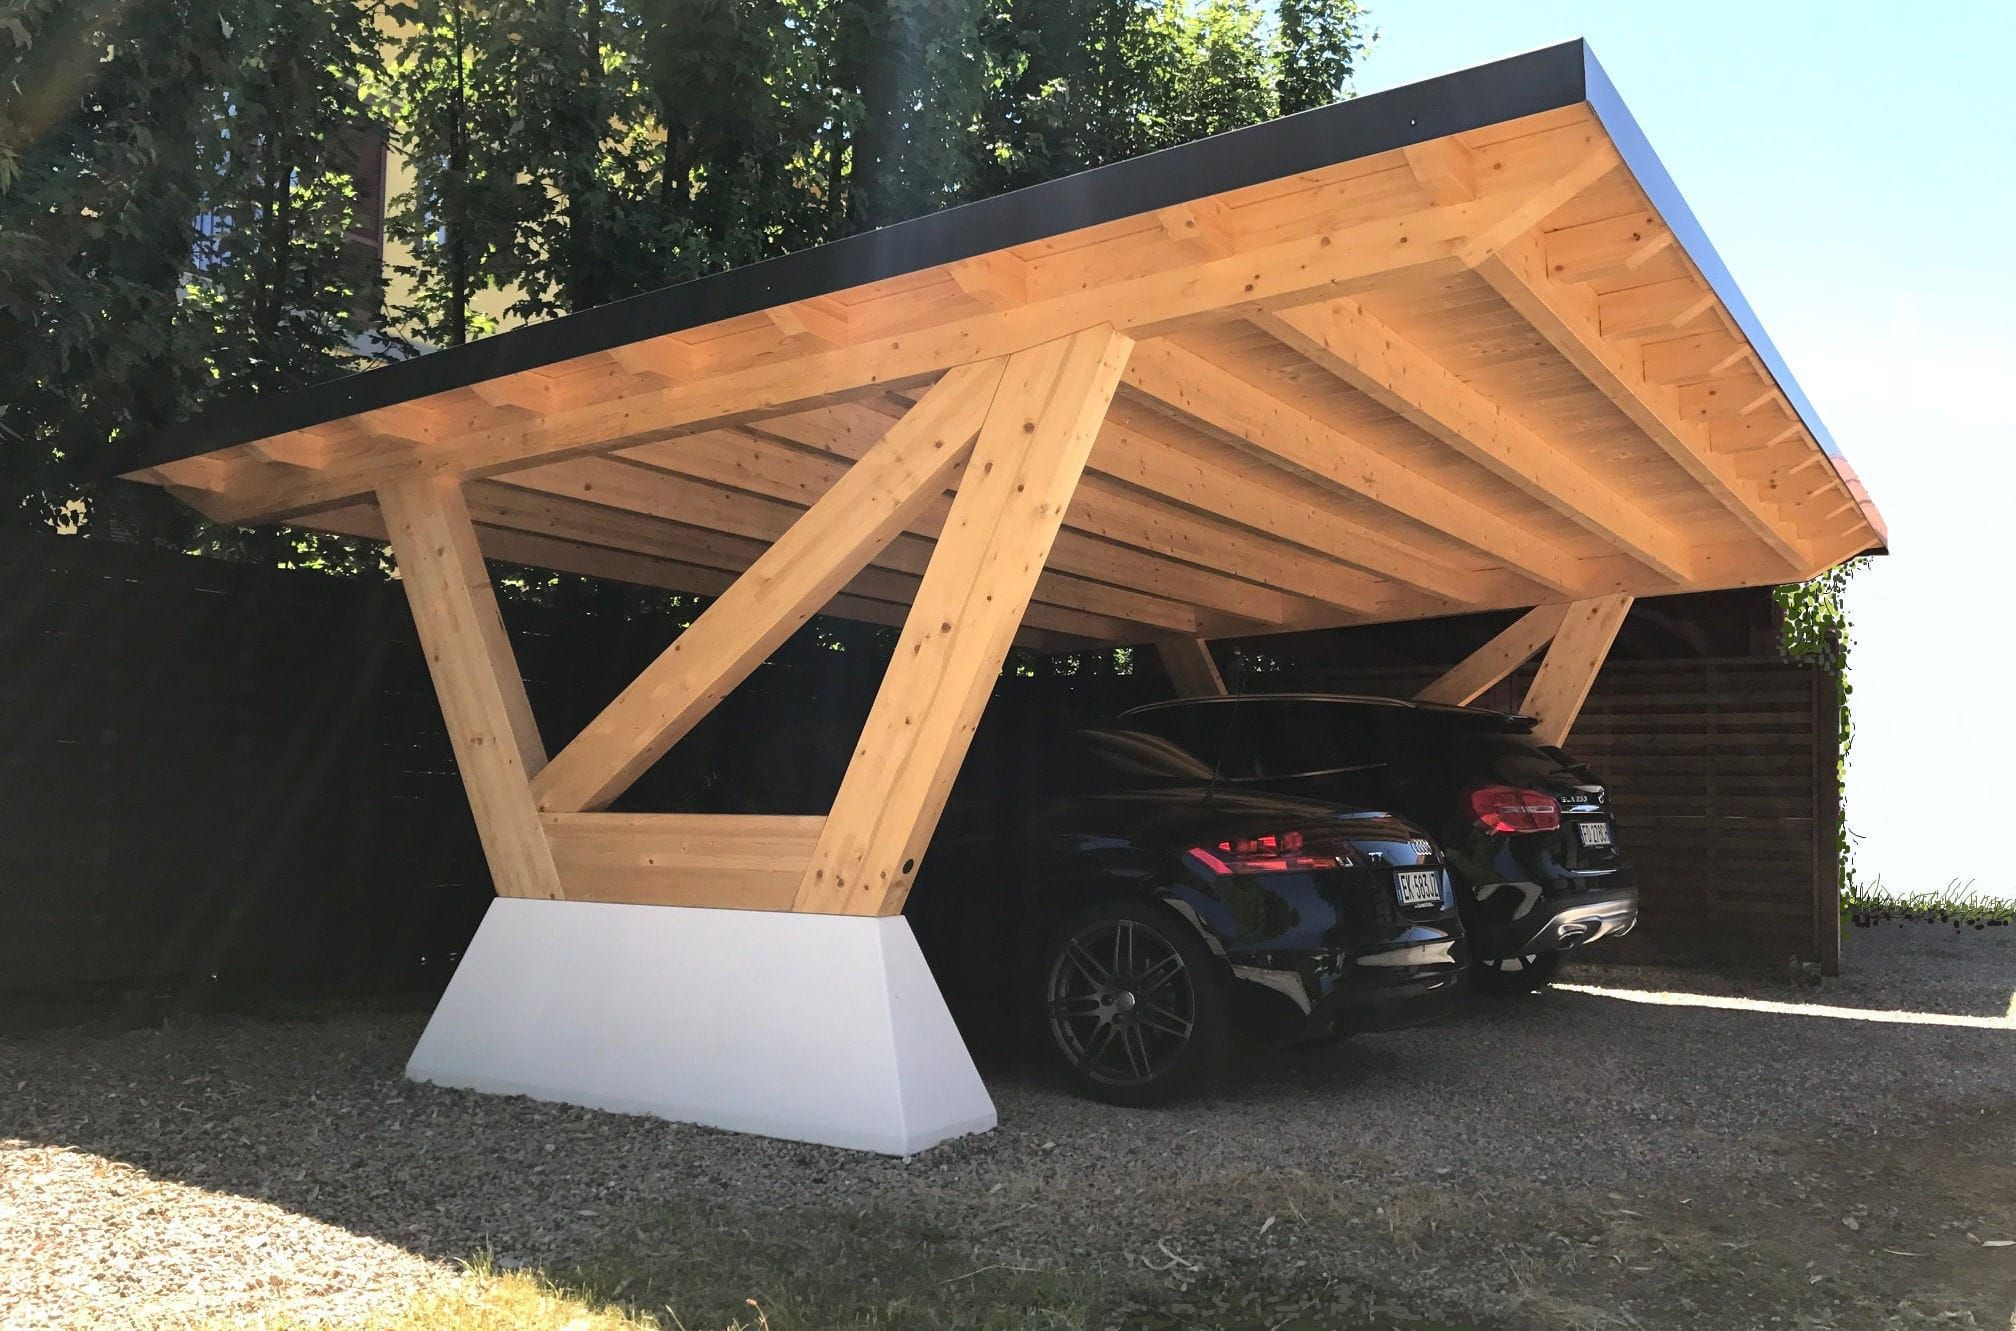 Concrete Carport Wooden New York Proverbio Outdoor Design Wooden Carports Carport Designs Building A Carport